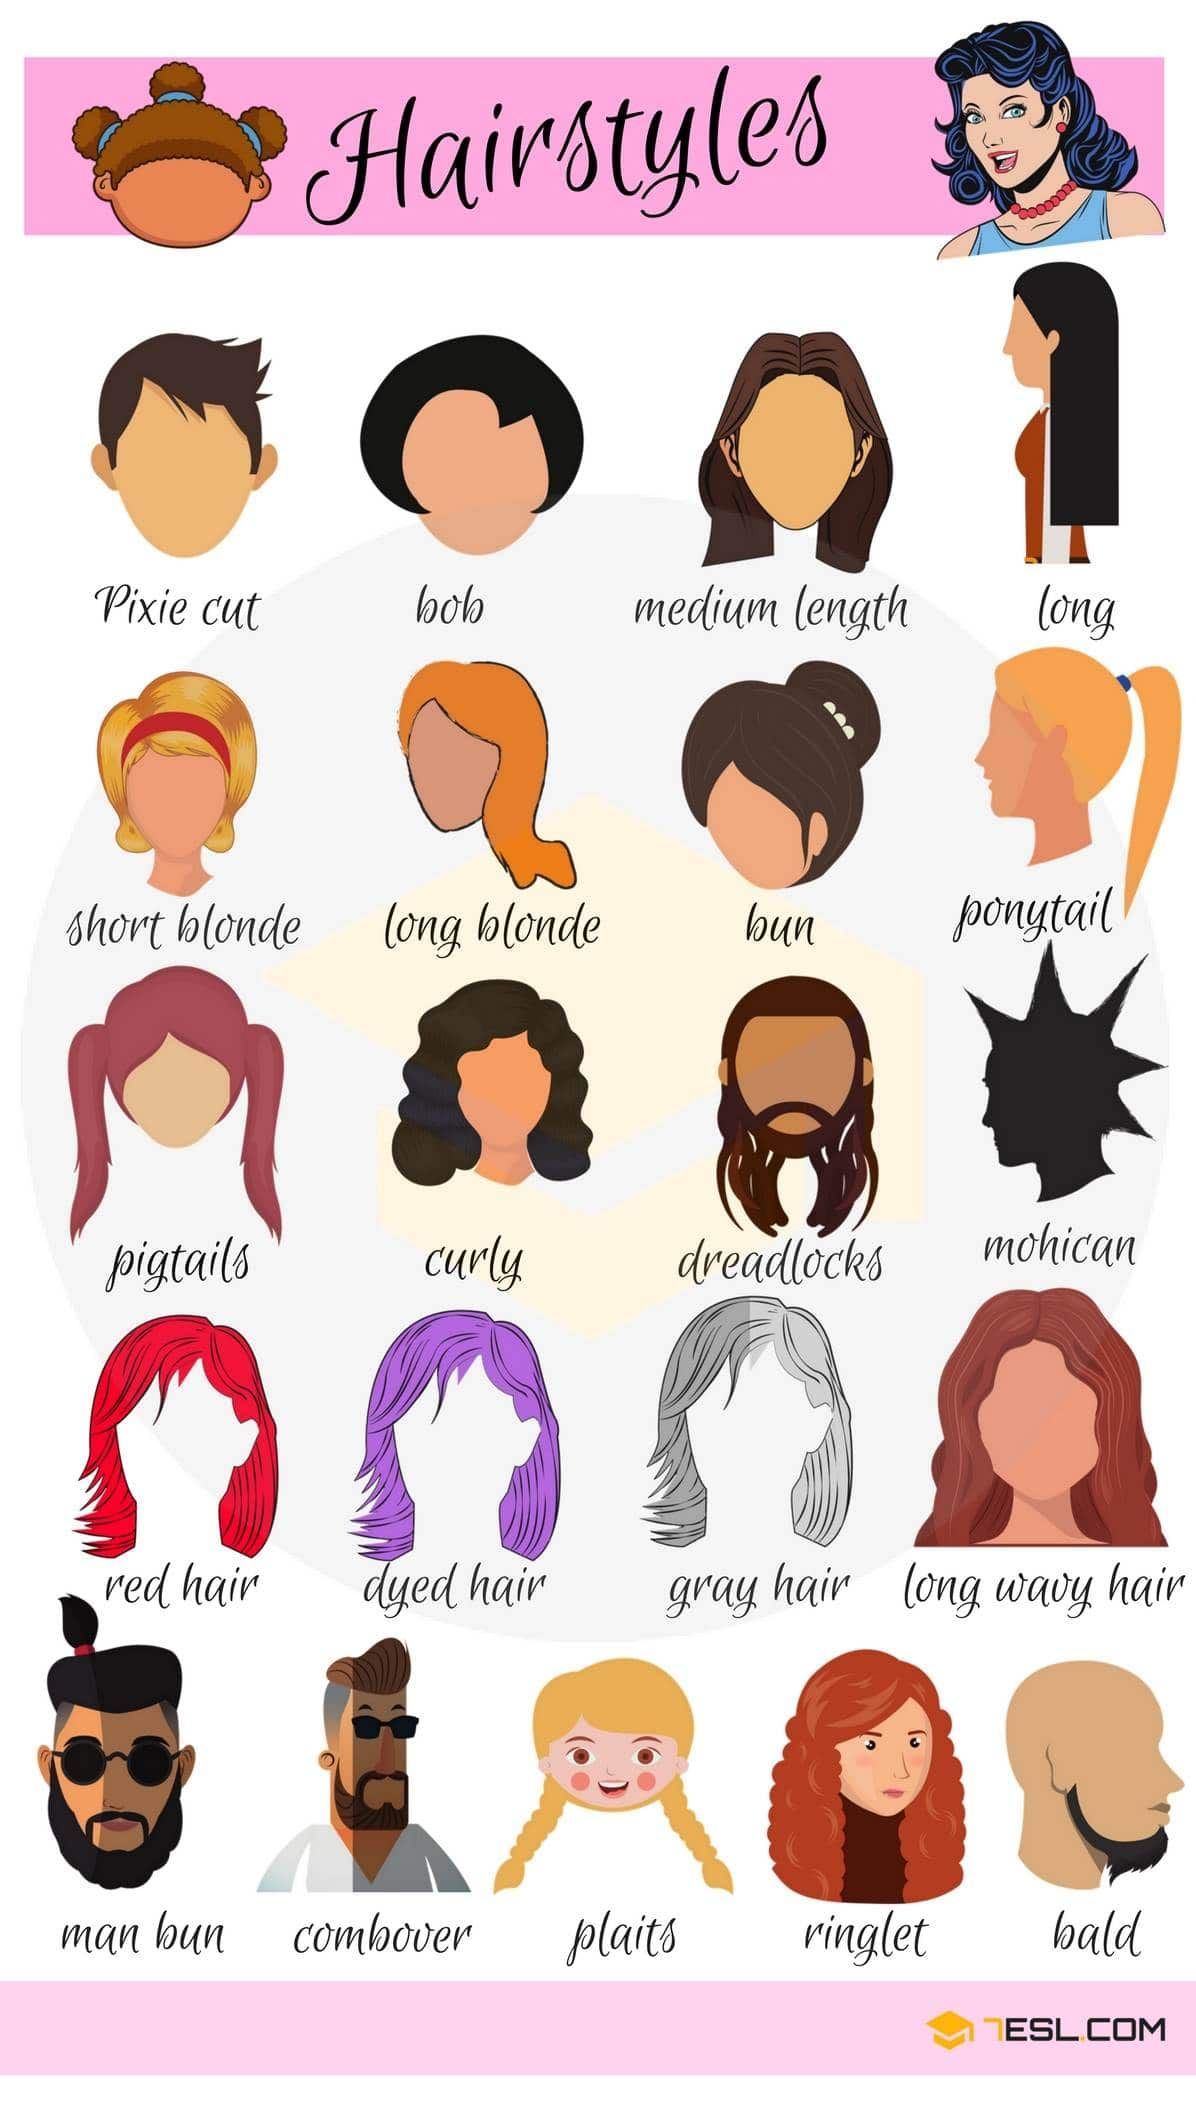 hairstyle vocabulary in english ielts englisch lernen